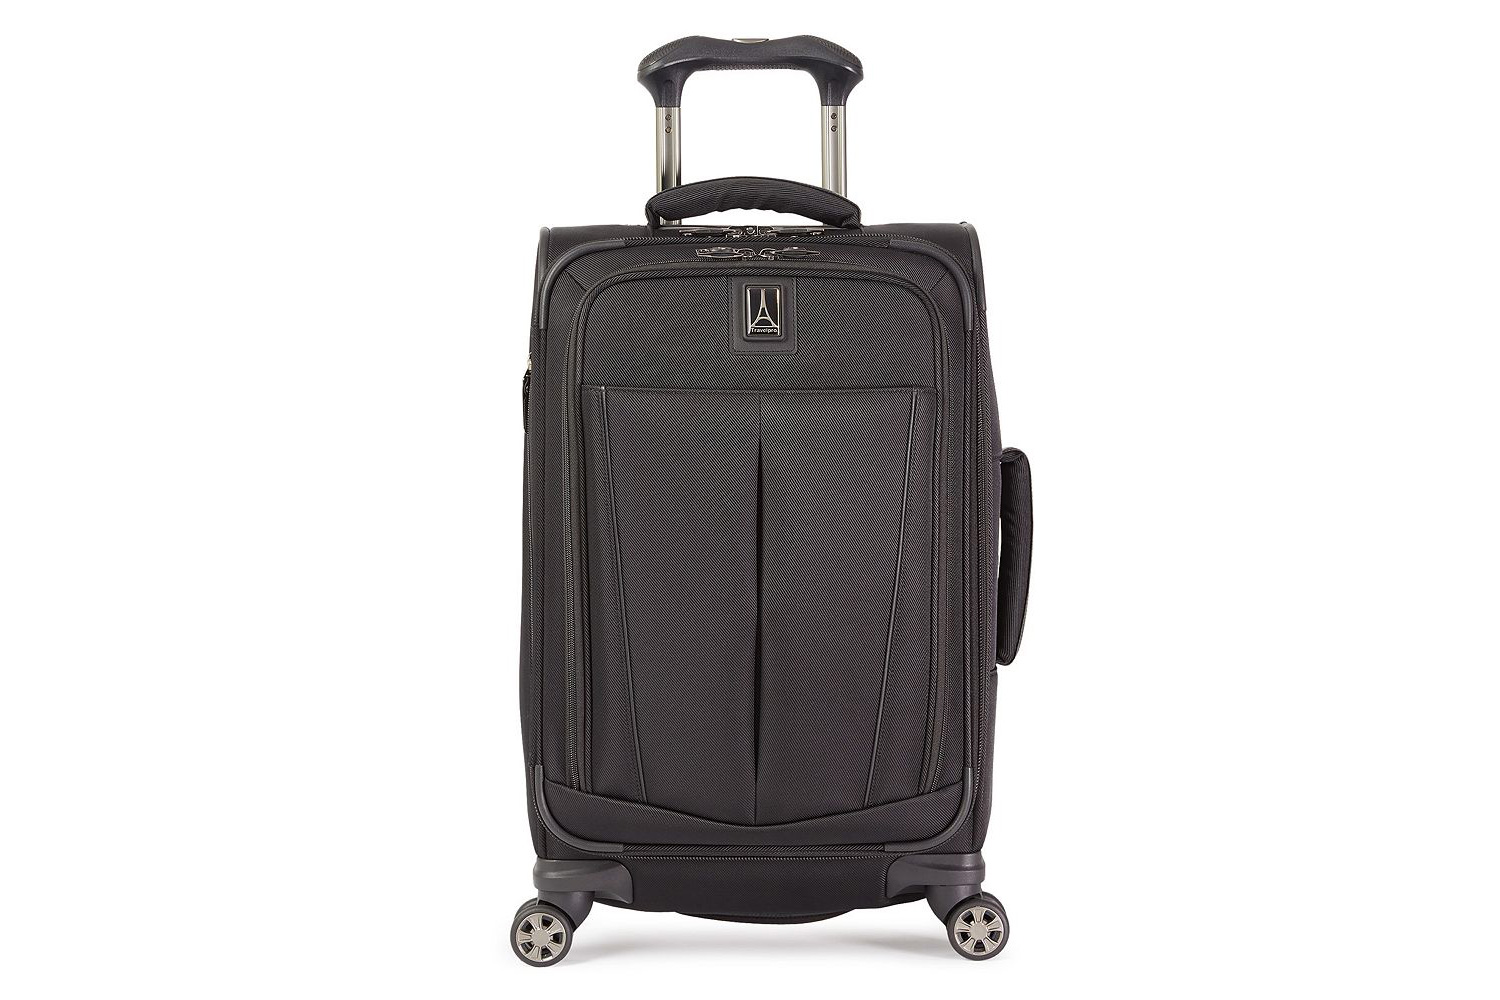 29' Travelpro Flightpro Spinner Luggage